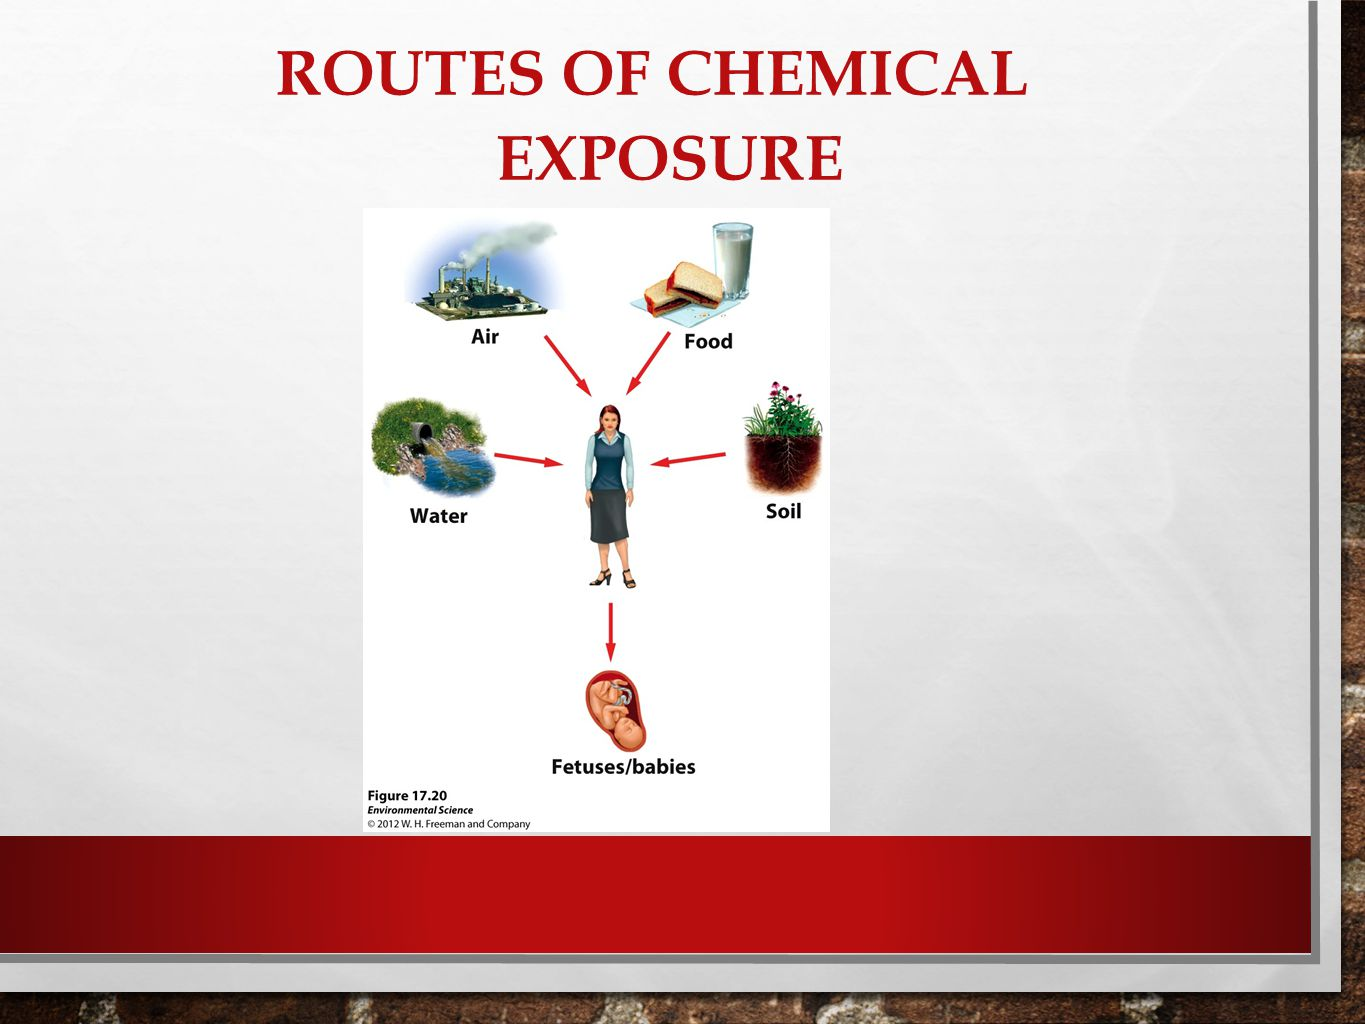 Routes of Chemical Exposure